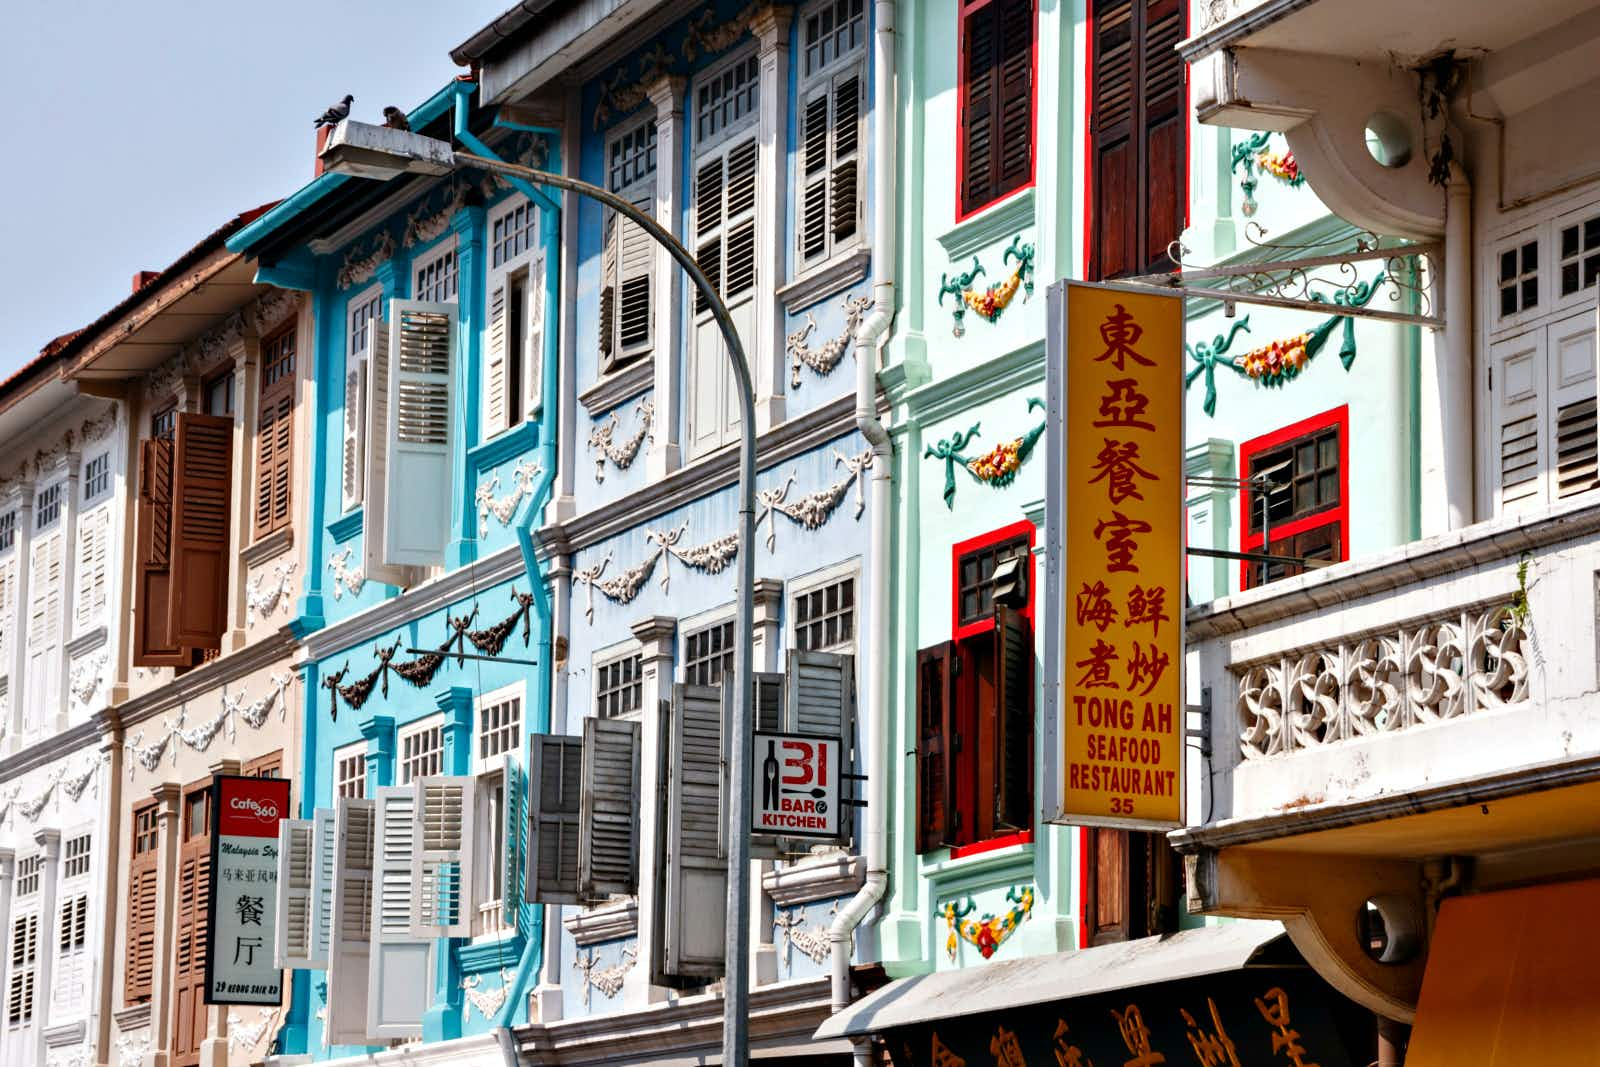 Singapore's eat street: the Keong Saik Road's best food